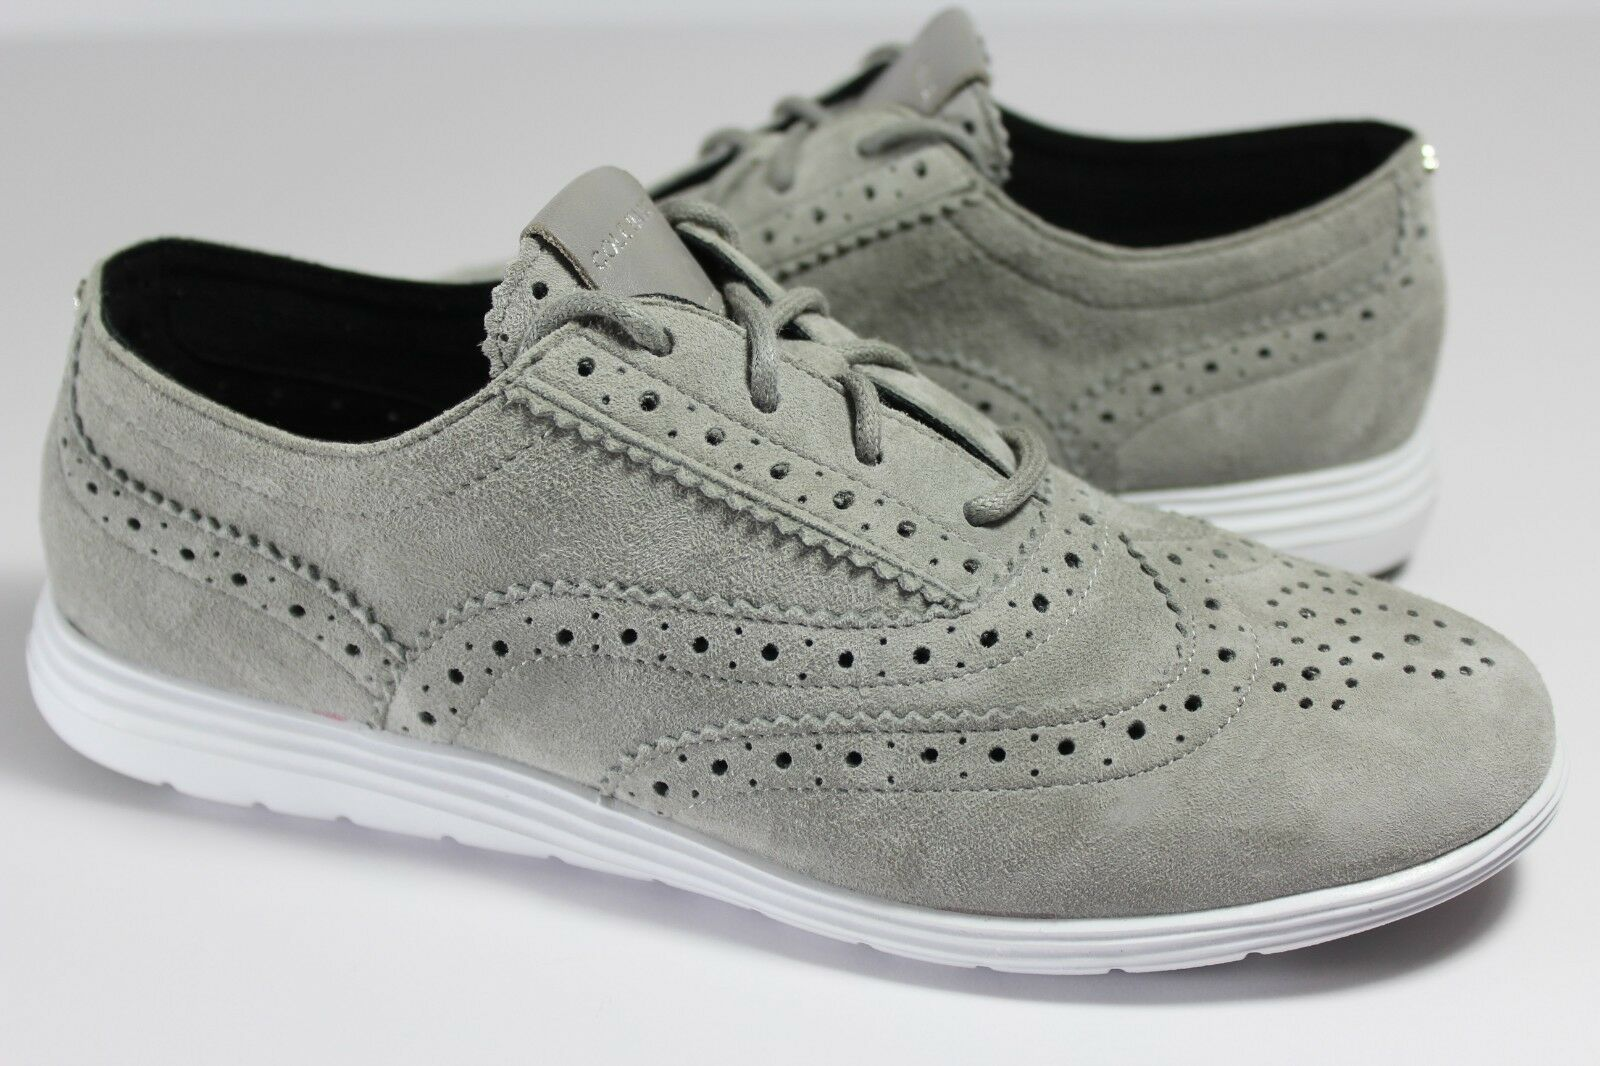 Cole Haan Grand Tour Suede Iron Stone Grey W05596 Oxford shoes Size 5 B R571